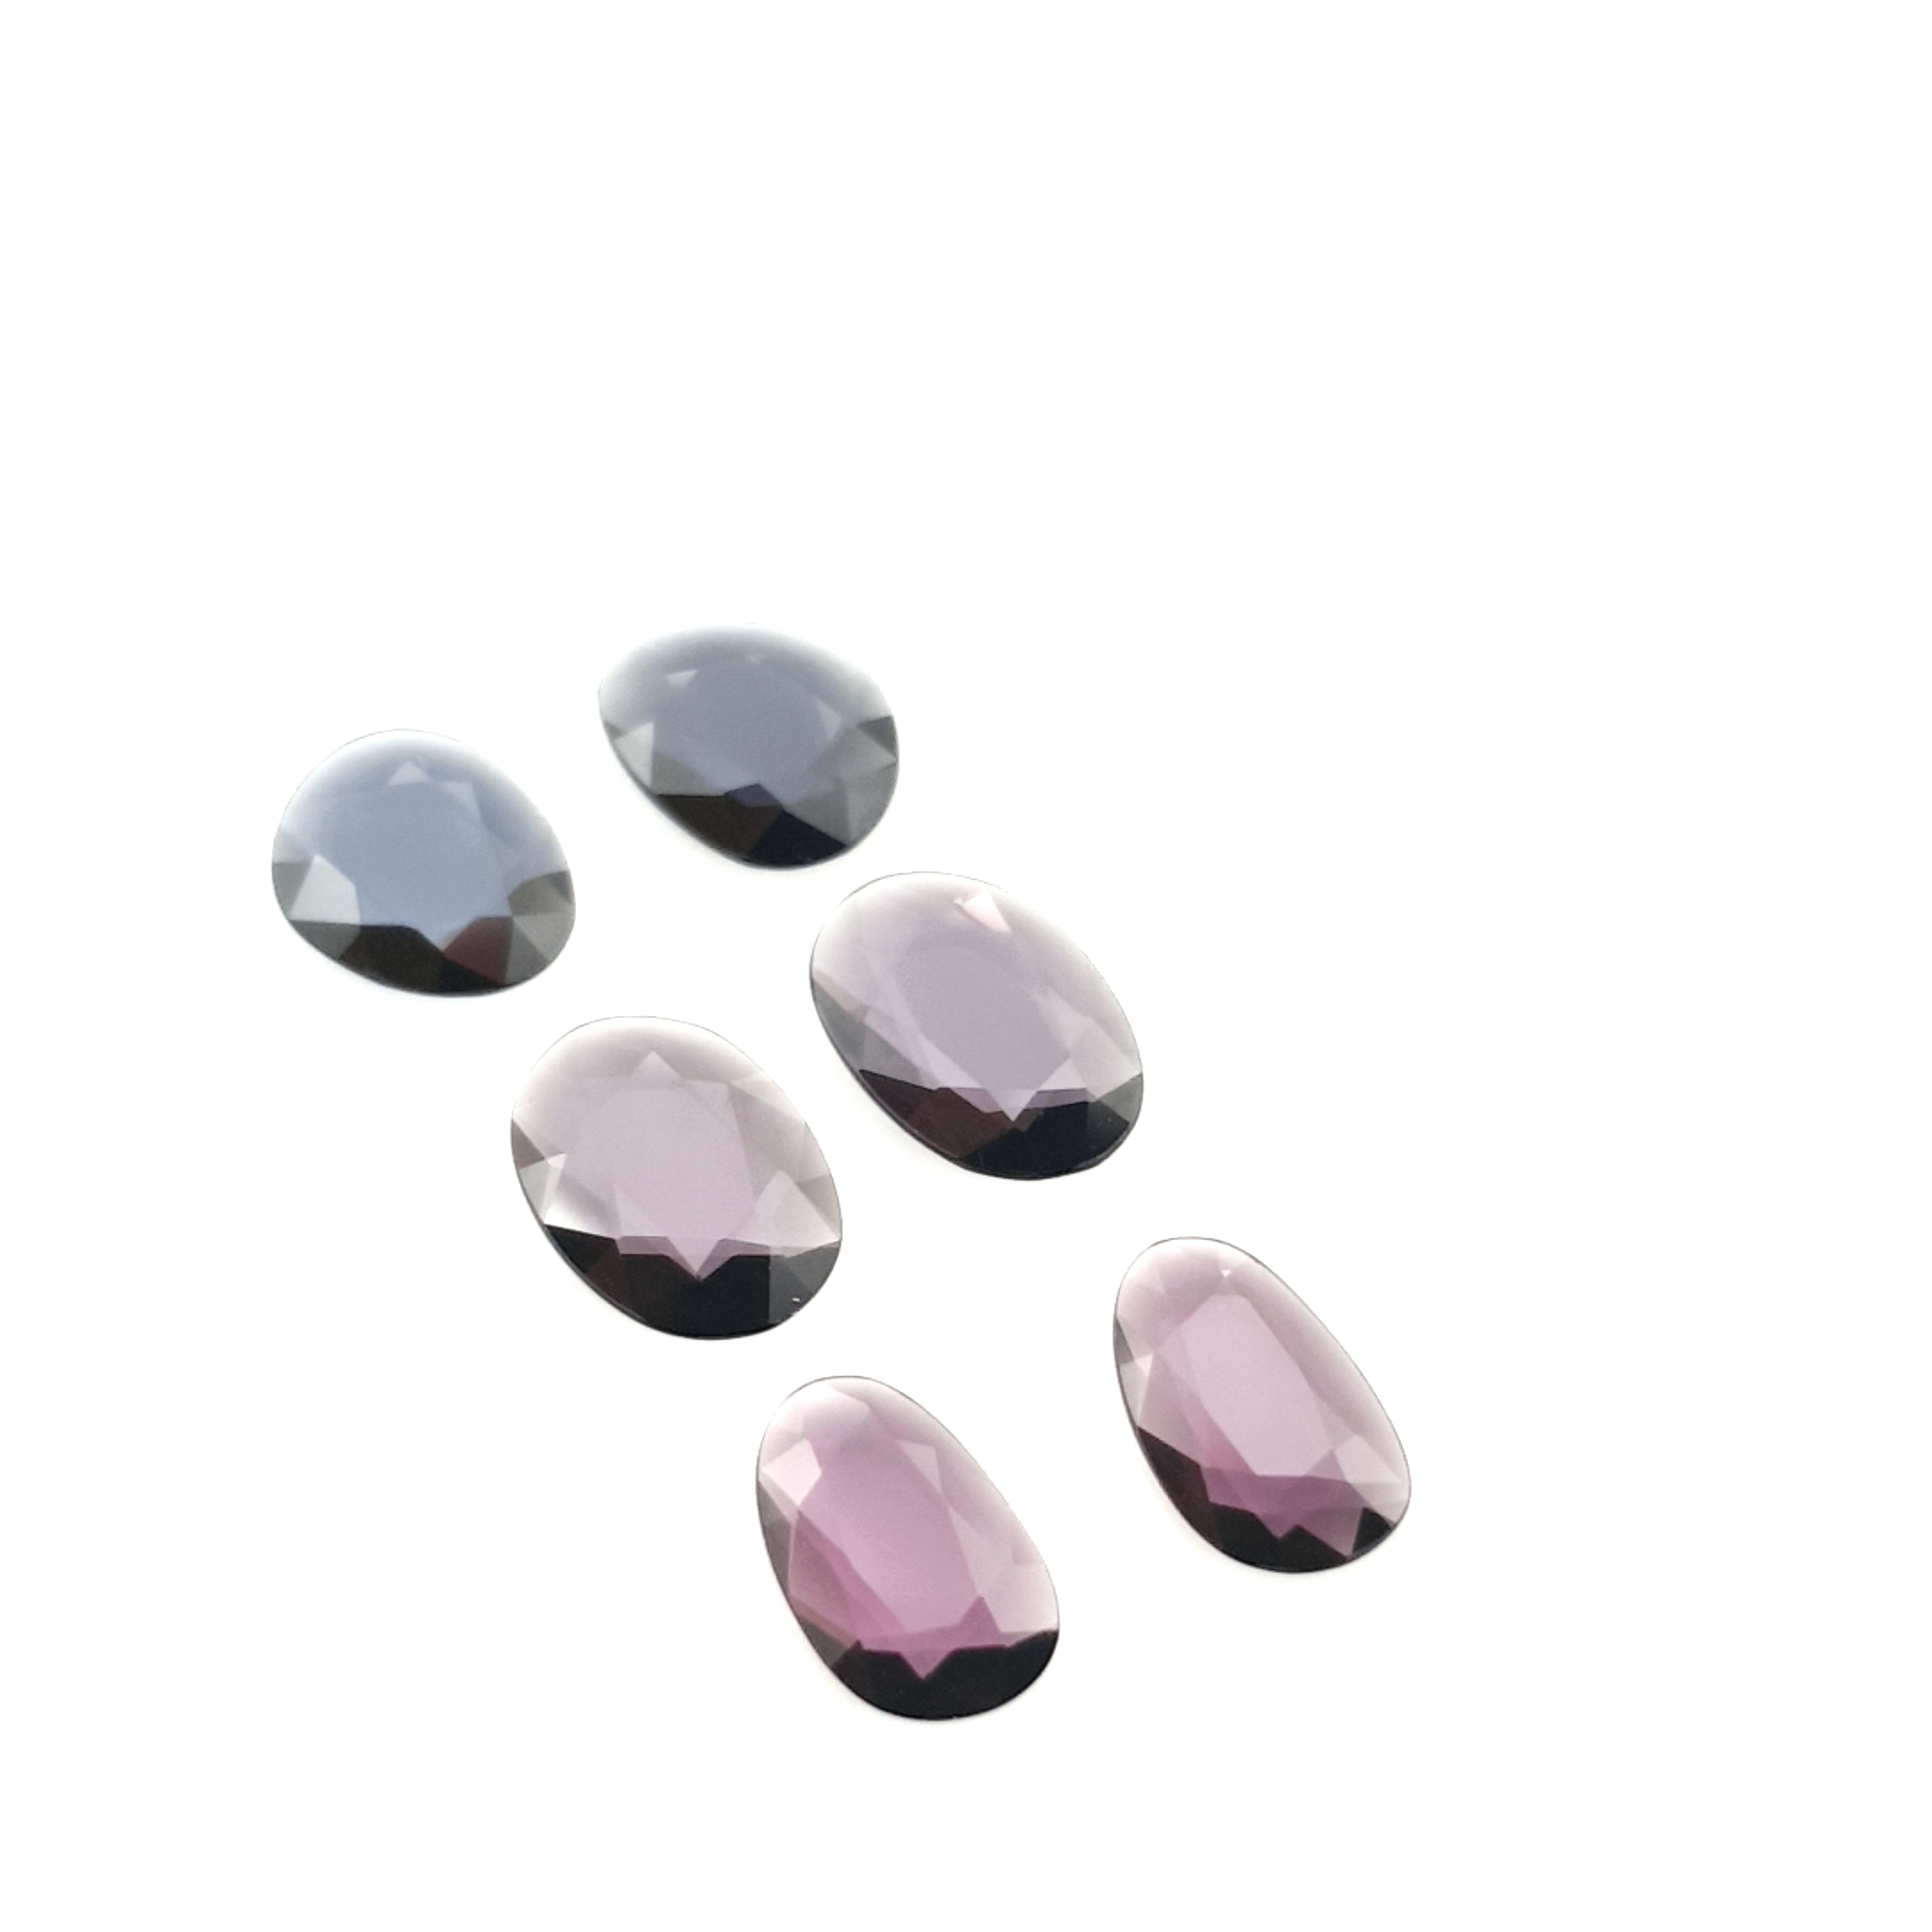 6,76ct. 1,00ct.size Pairs Spinel DoubleRoseCut SNJ18C9 ClaudiaHamann__2021-02-16-23-17-46